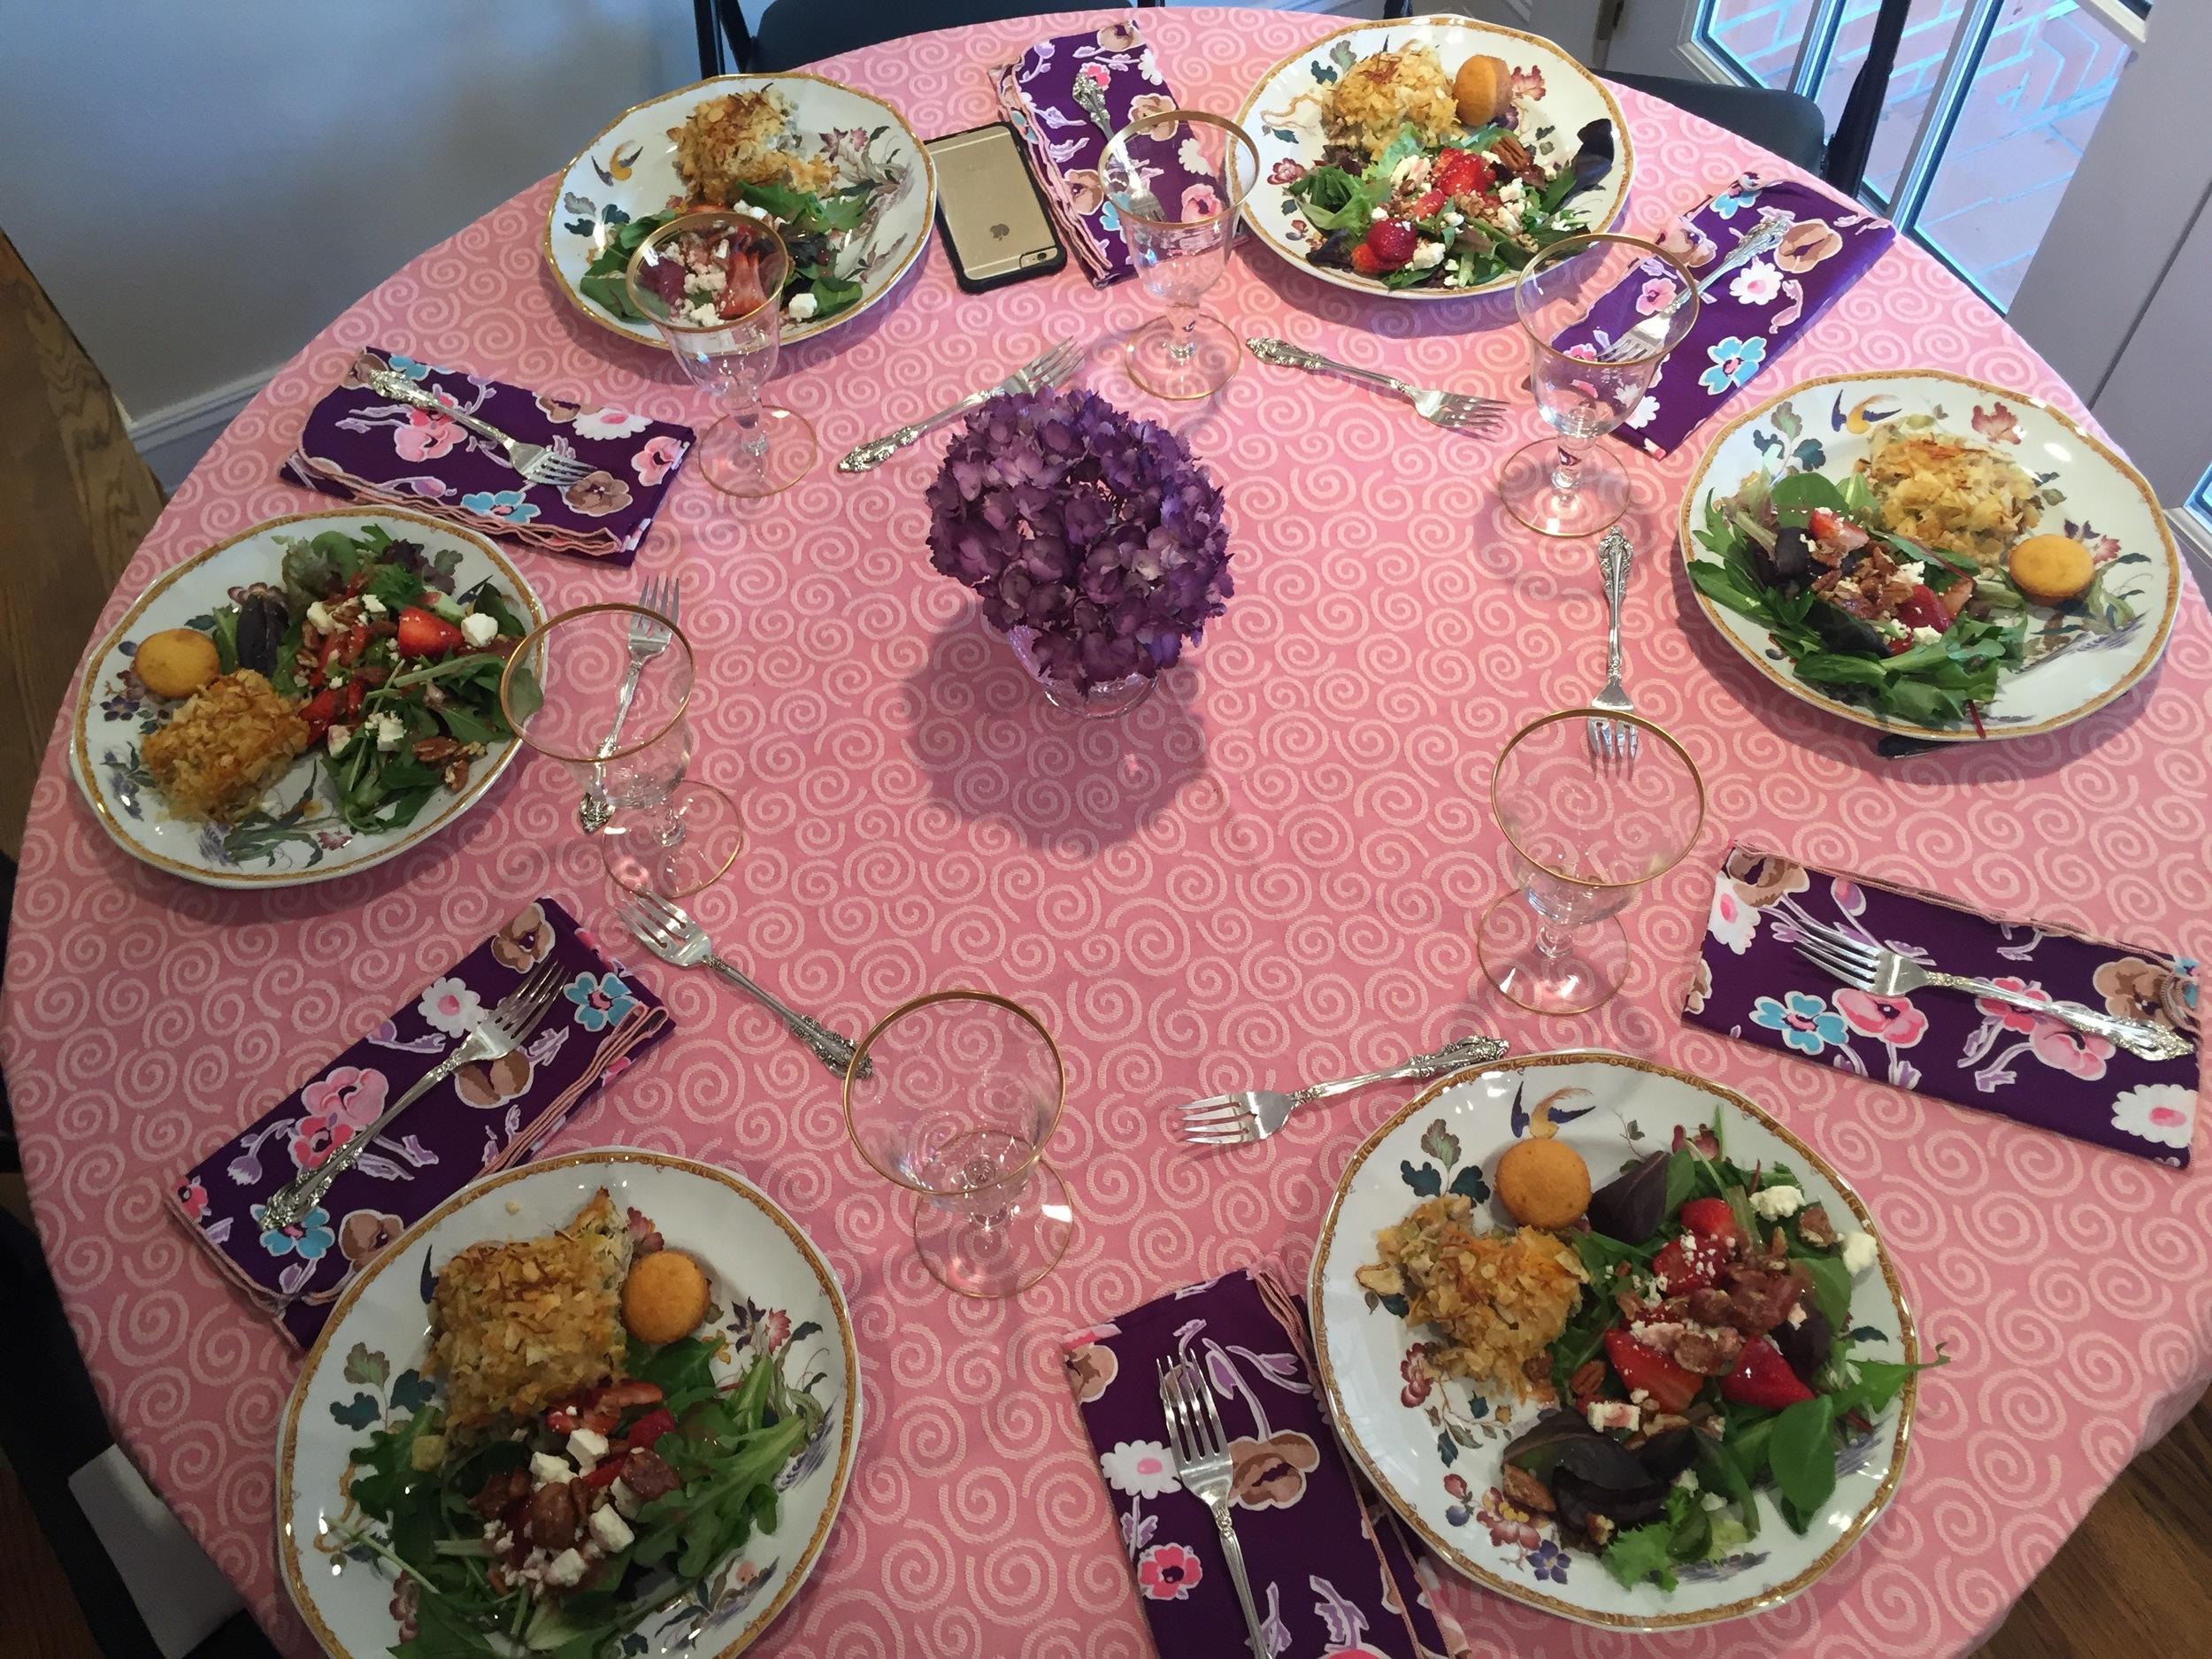 The table setting was lovely and lunch was delicious!